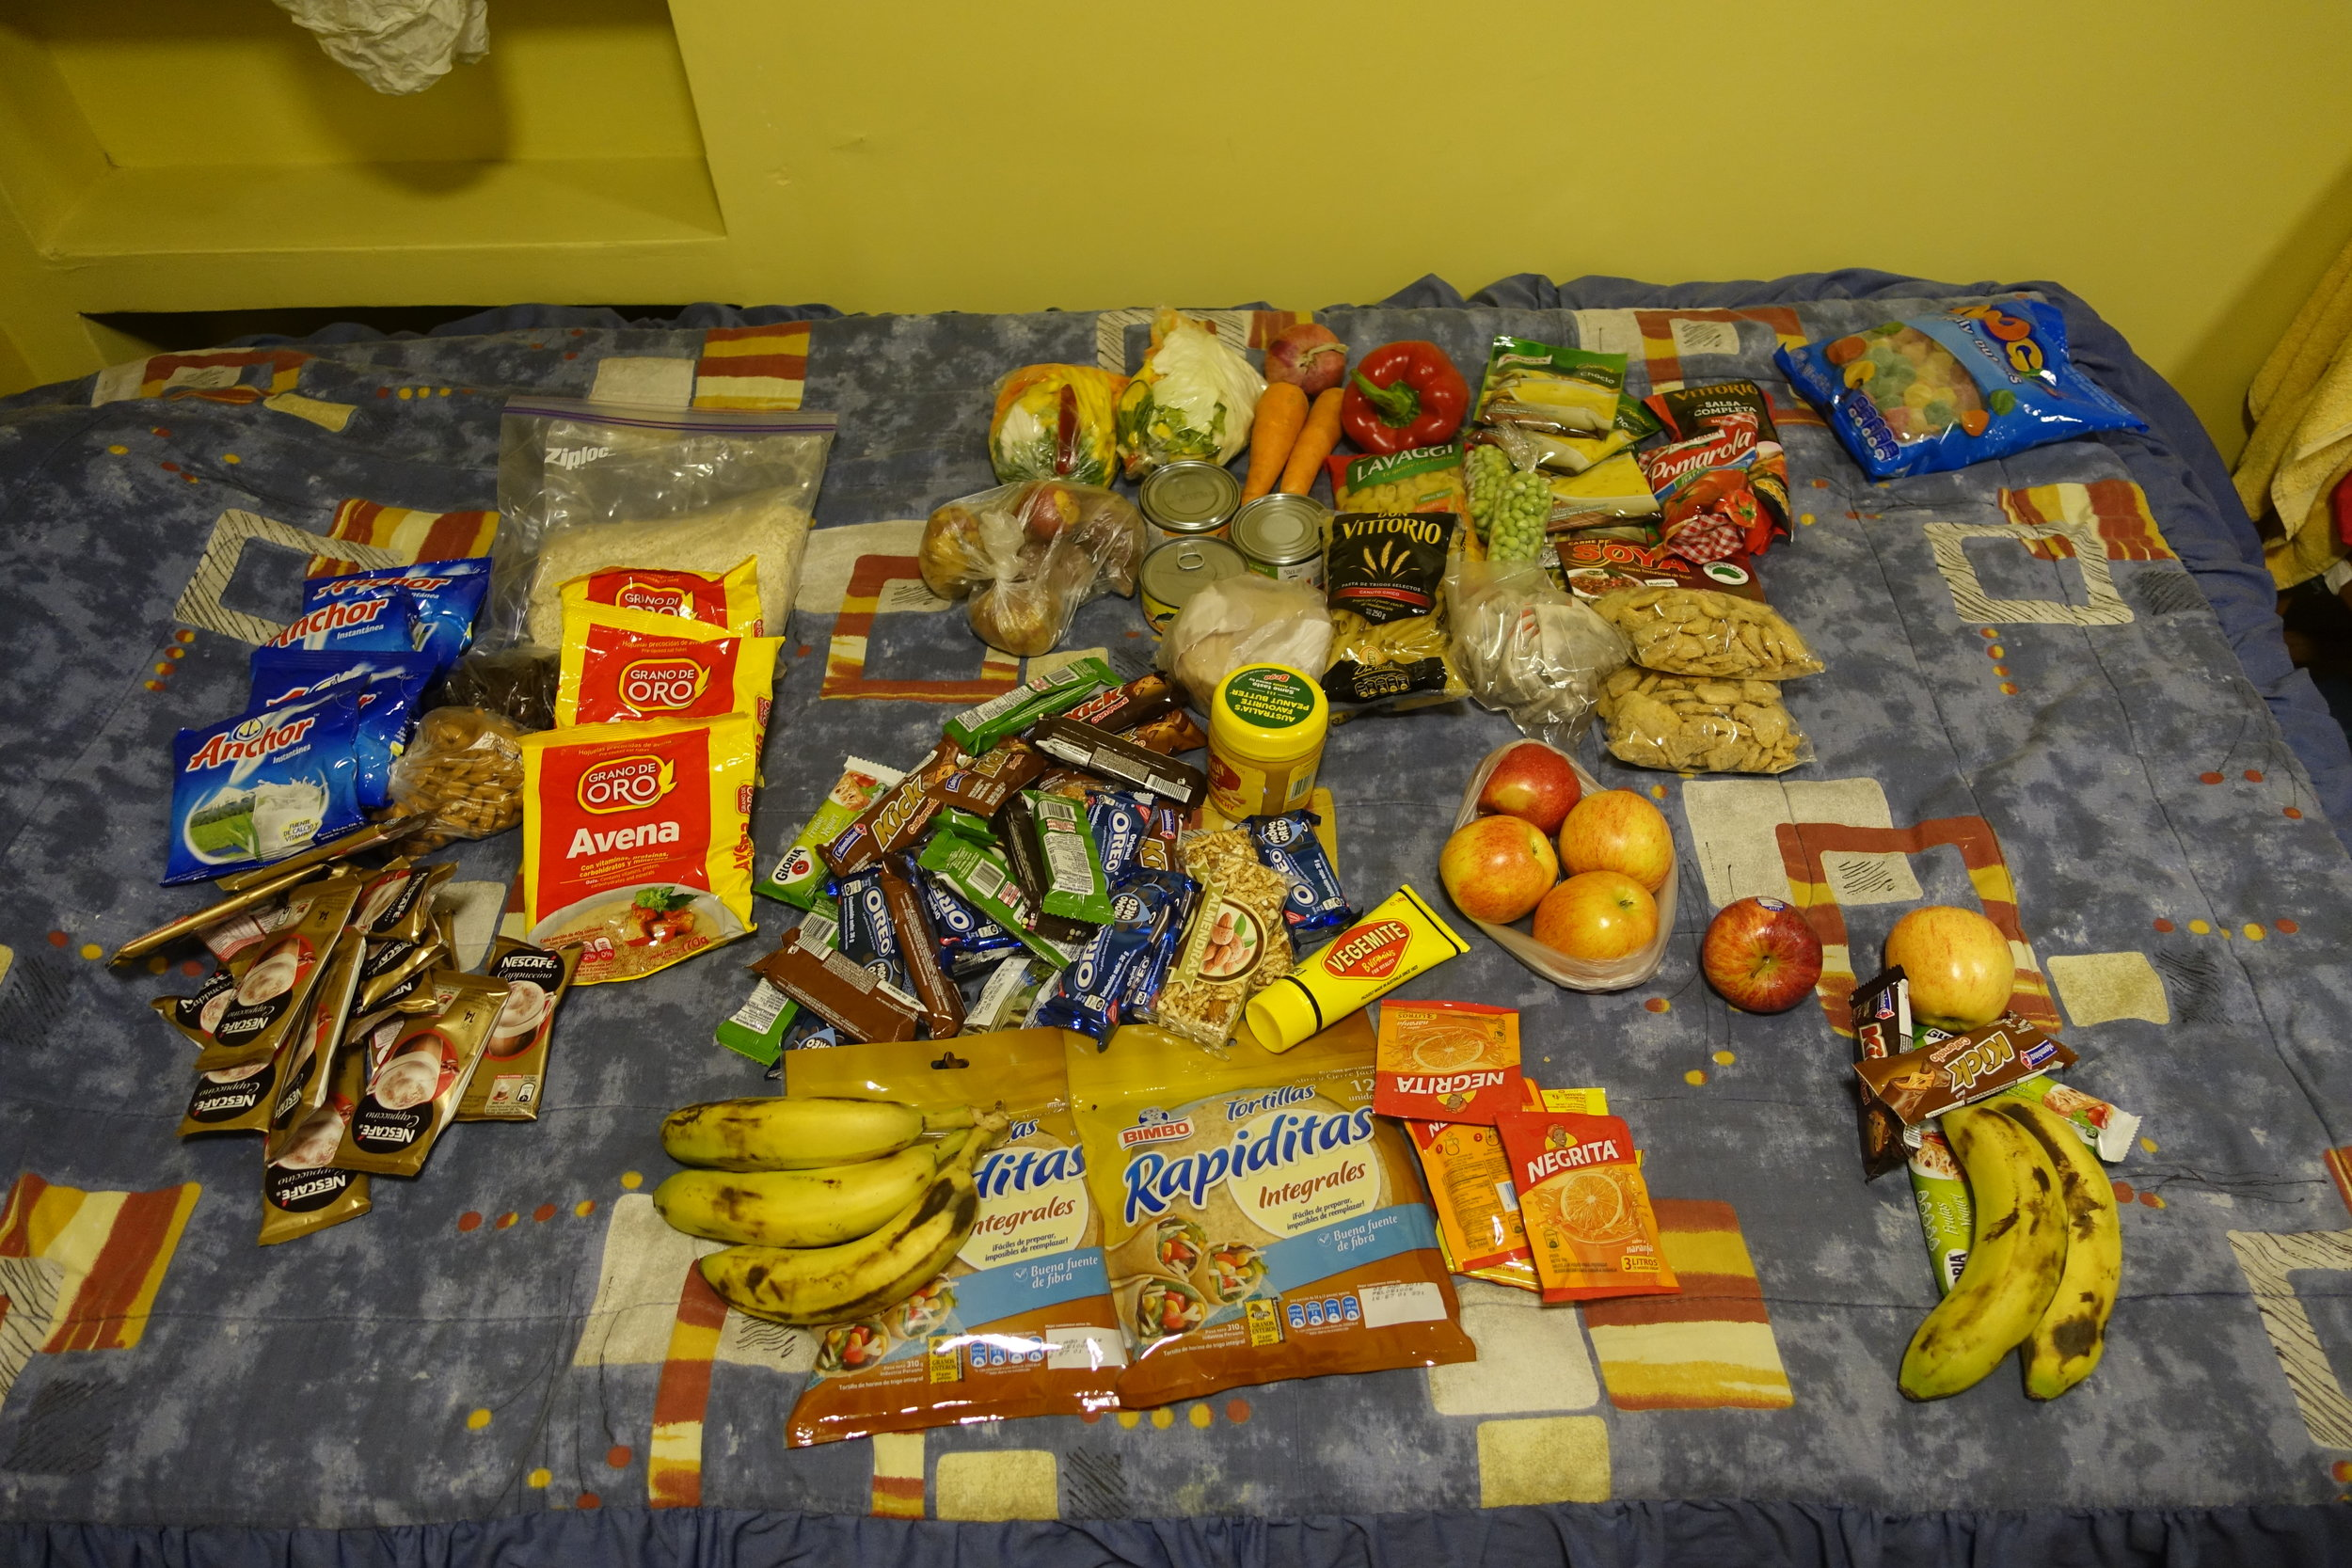 Our food supplies for our trip into Ishinca Valley. In addition to this we need our tent, climbing gear and clothes. Thank you Andrew for bringing the Vegemite!